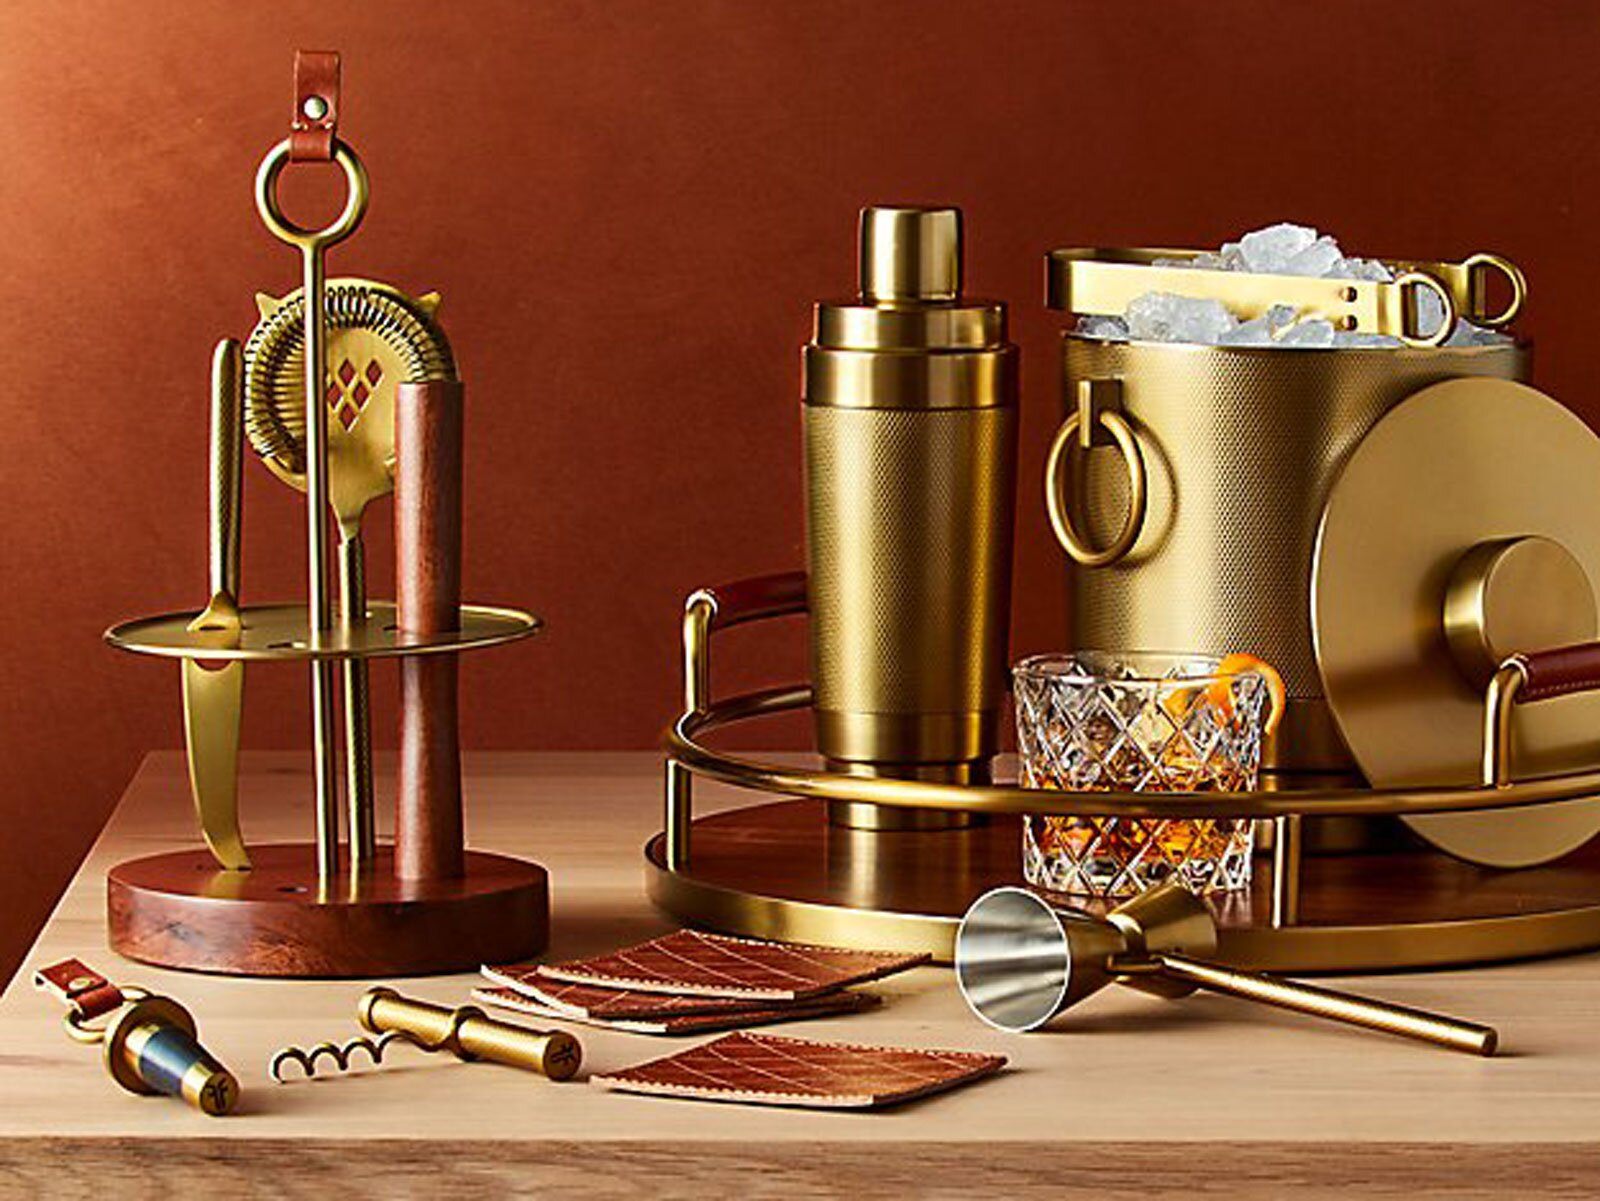 Frye Just Released A Barware Collection At Crate Barrel And We Rsquo D Like One Of Everything Food Wine